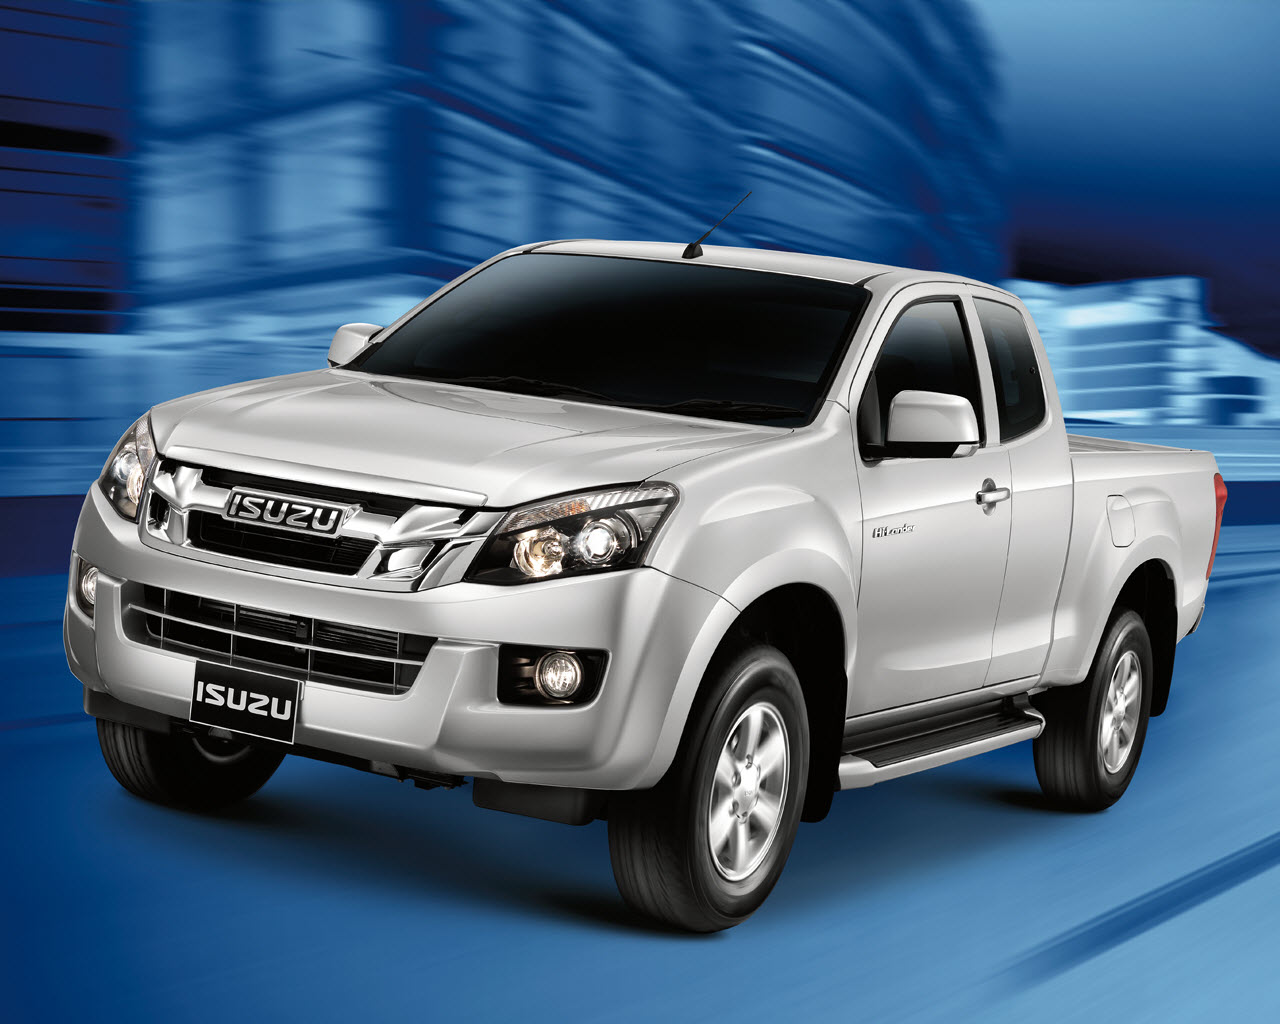 New Isuzu D-Max 2014